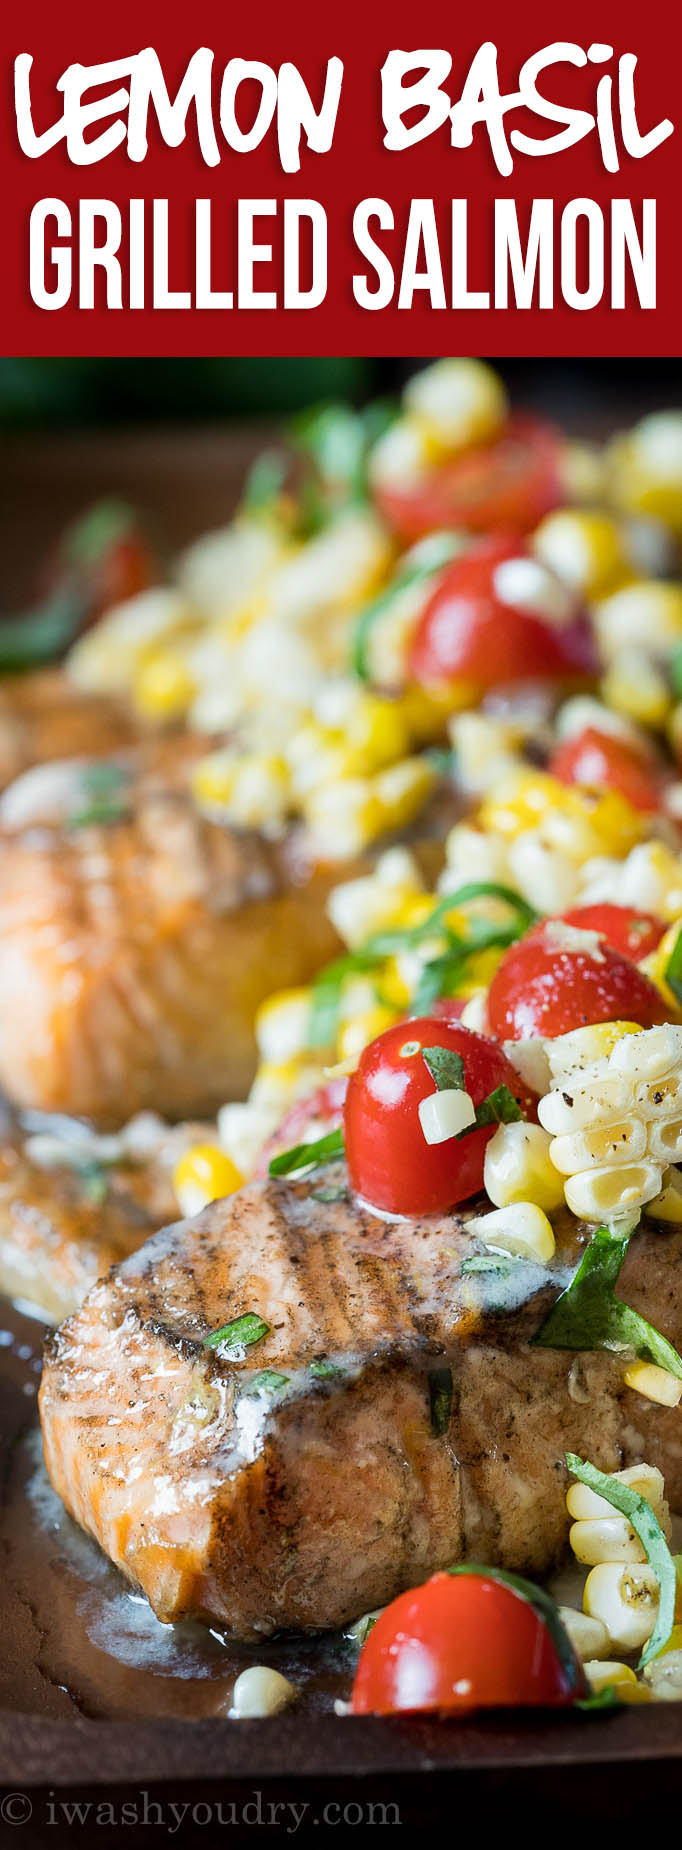 This Lemon Basil Grilled Salmon is topped with a lemon and basil infused butter and a grilled corn and tomato salad that's so fresh and delicious!